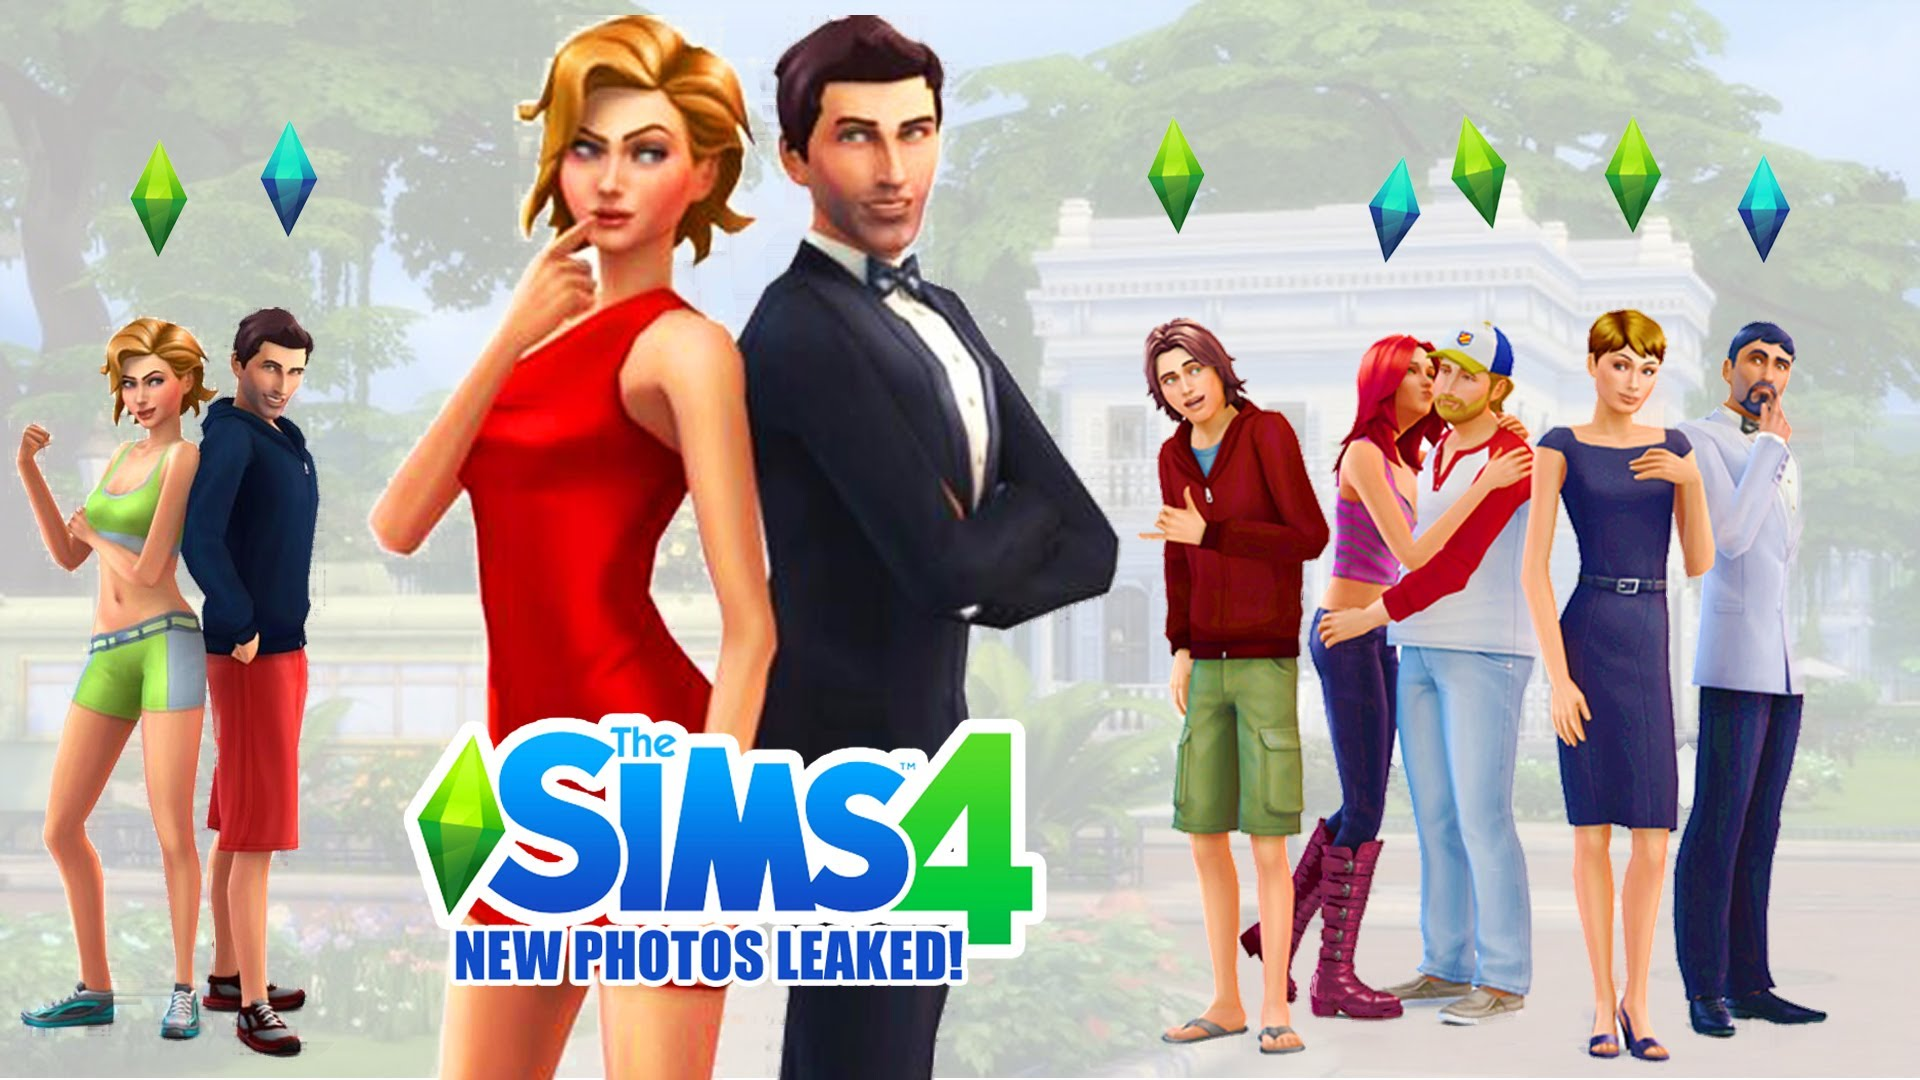 The Sims Wallpapers High Quality Download Free